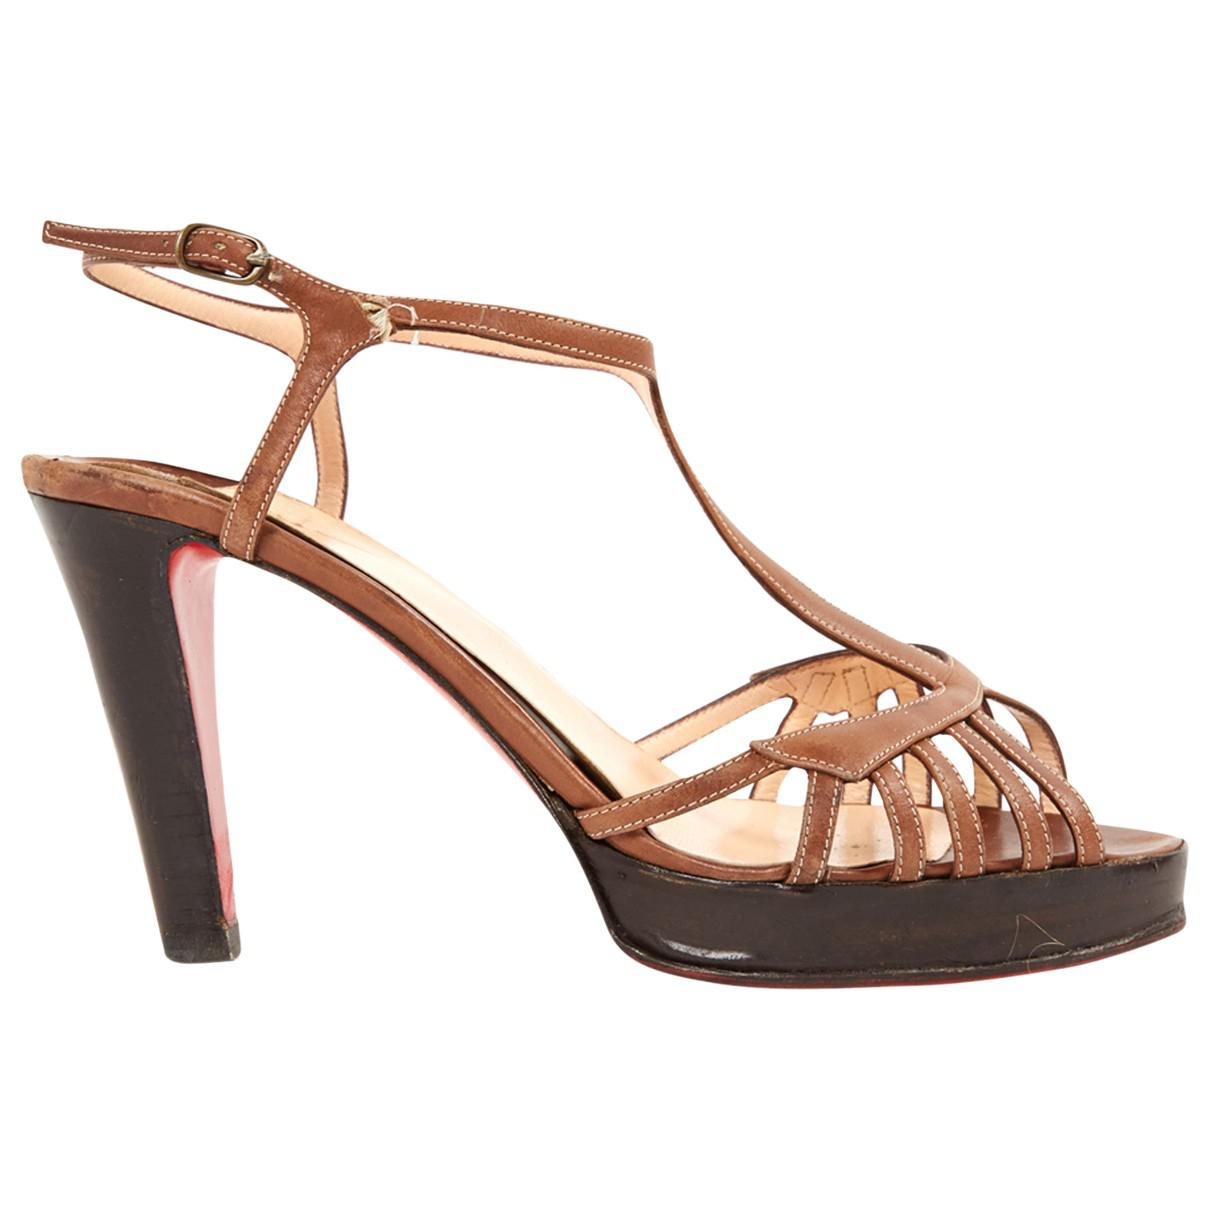 Pre-owned - Leather sandals Christian Louboutin V4RxGqv